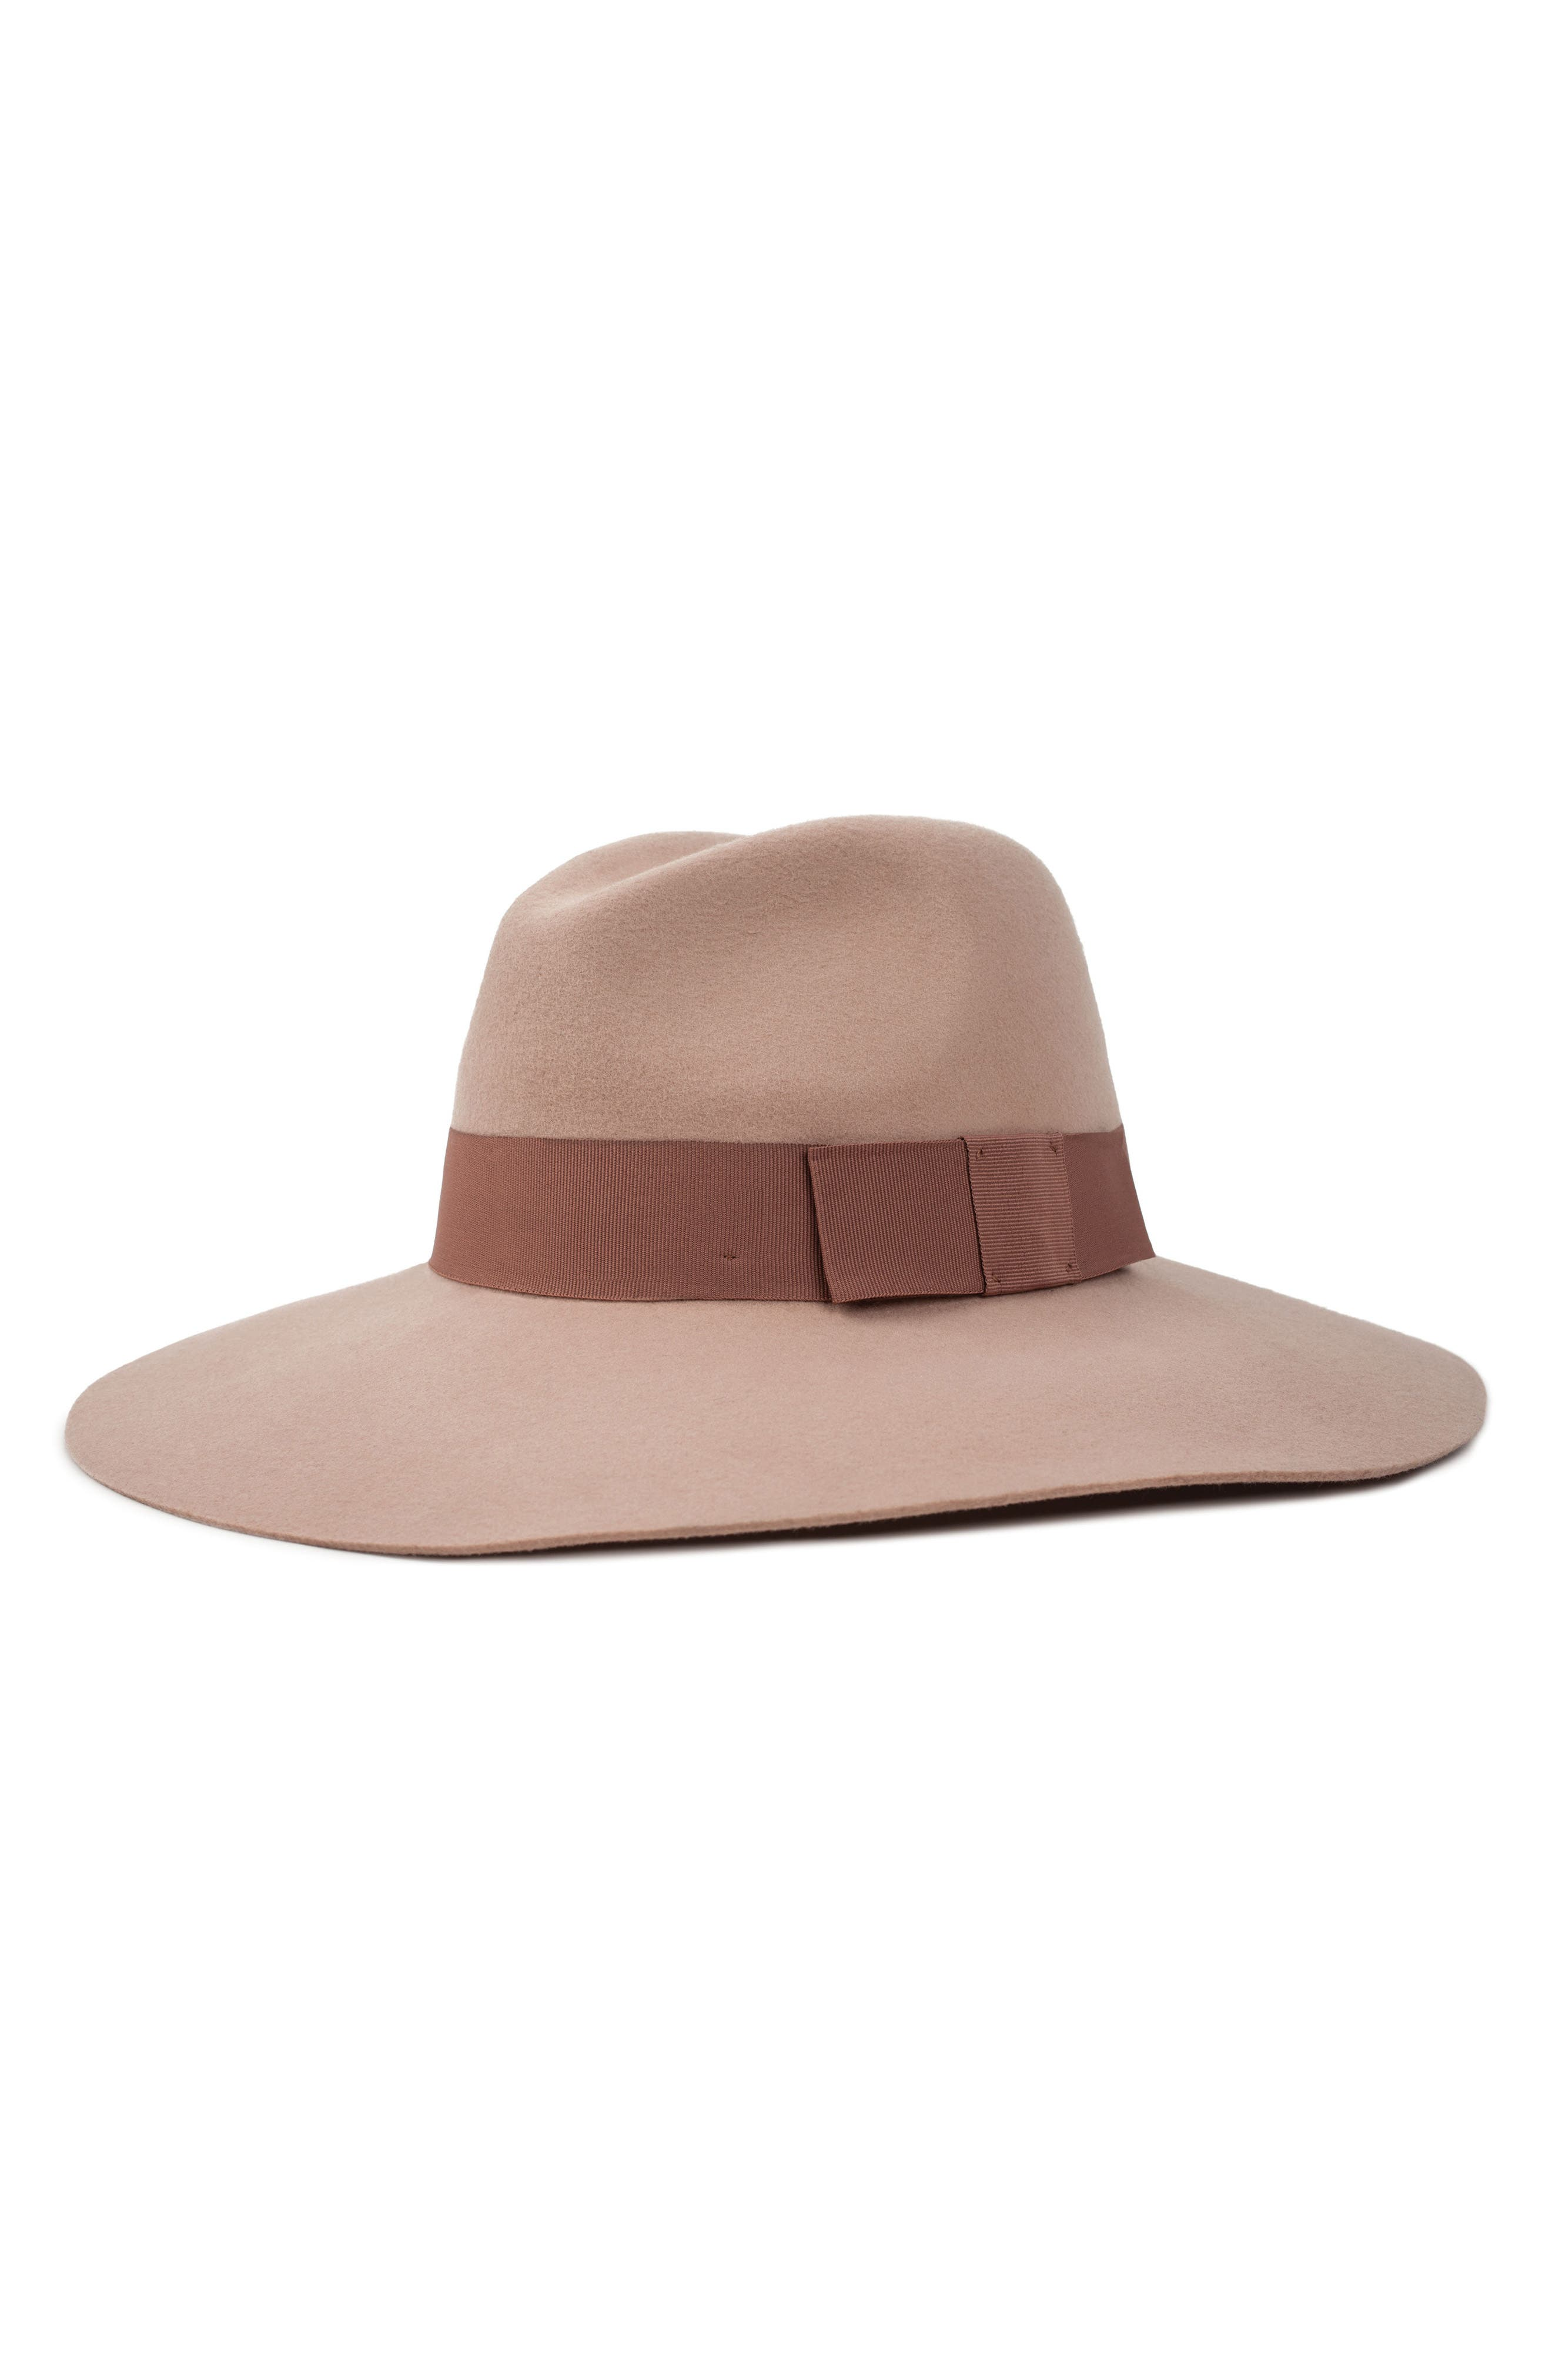 'Piper' Floppy Wool Hat,                         Main,                         color, BLUSH